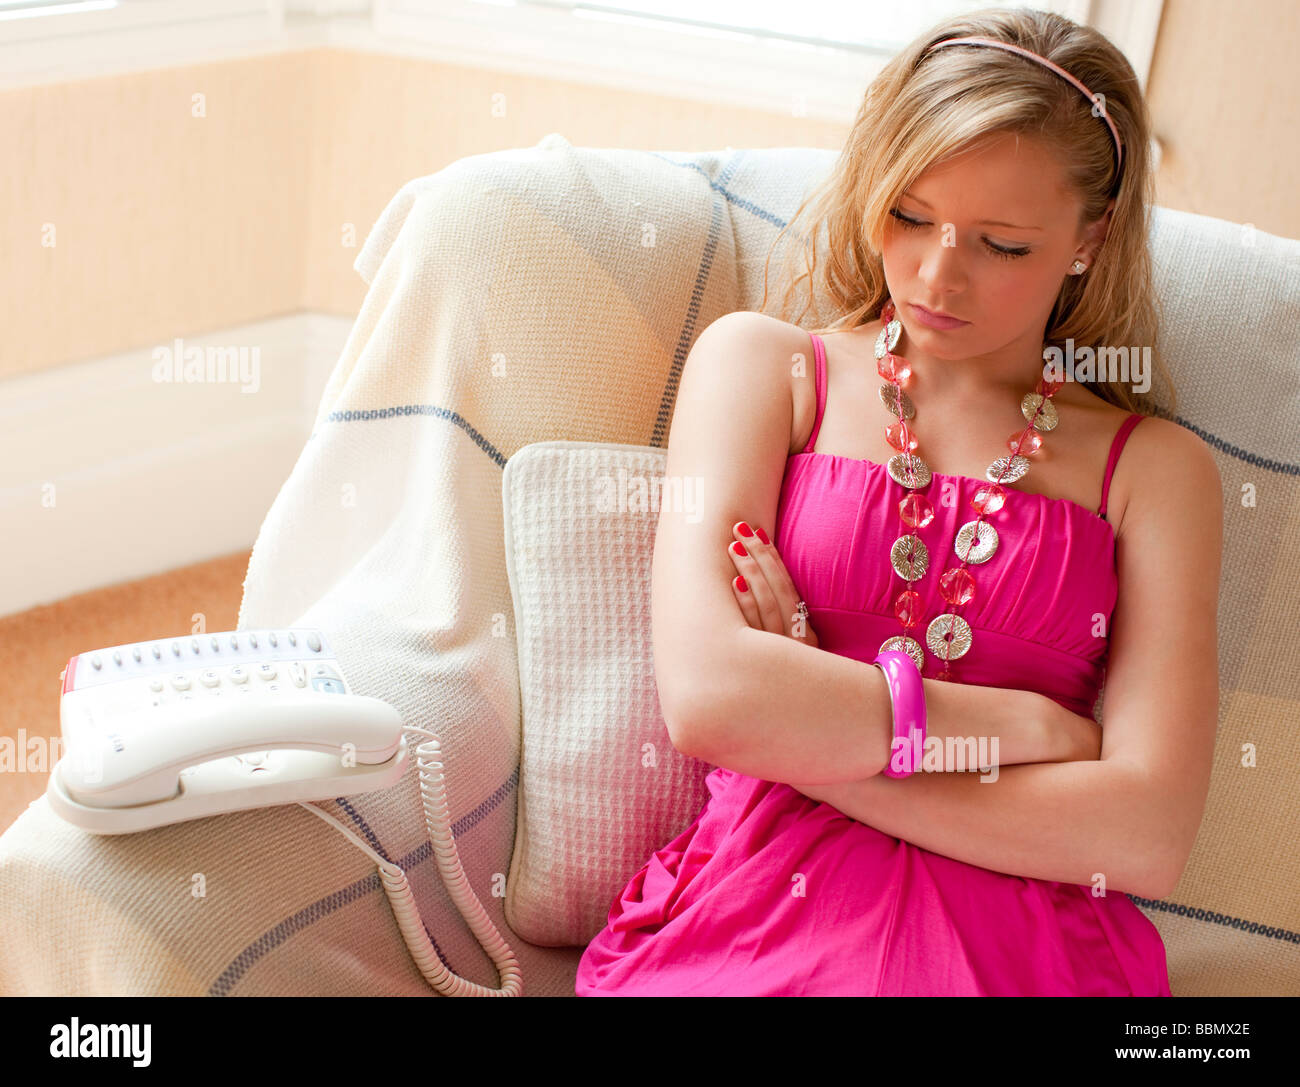 Young girl waiting for someone to call - Stock Image